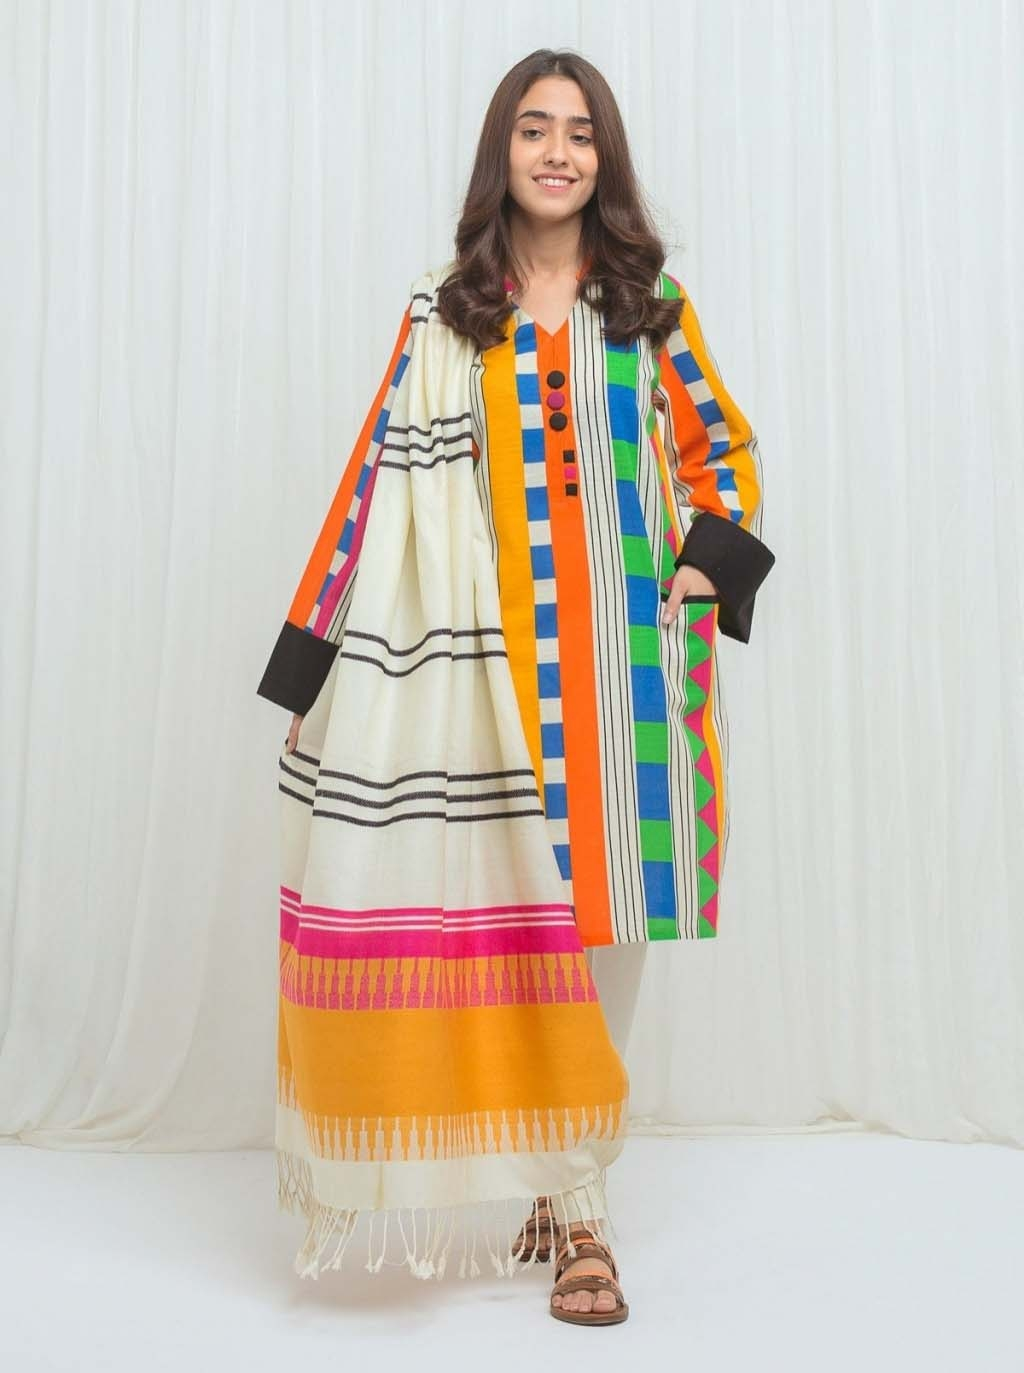 16196300570_large_16134763260_Beechtree-Sale-Beechtree-New-new-winter-collection-2020-online-shopping-in-PakistanBeechtree-new-winter-collection-2020-online-shopping-in-Pakis.jpg